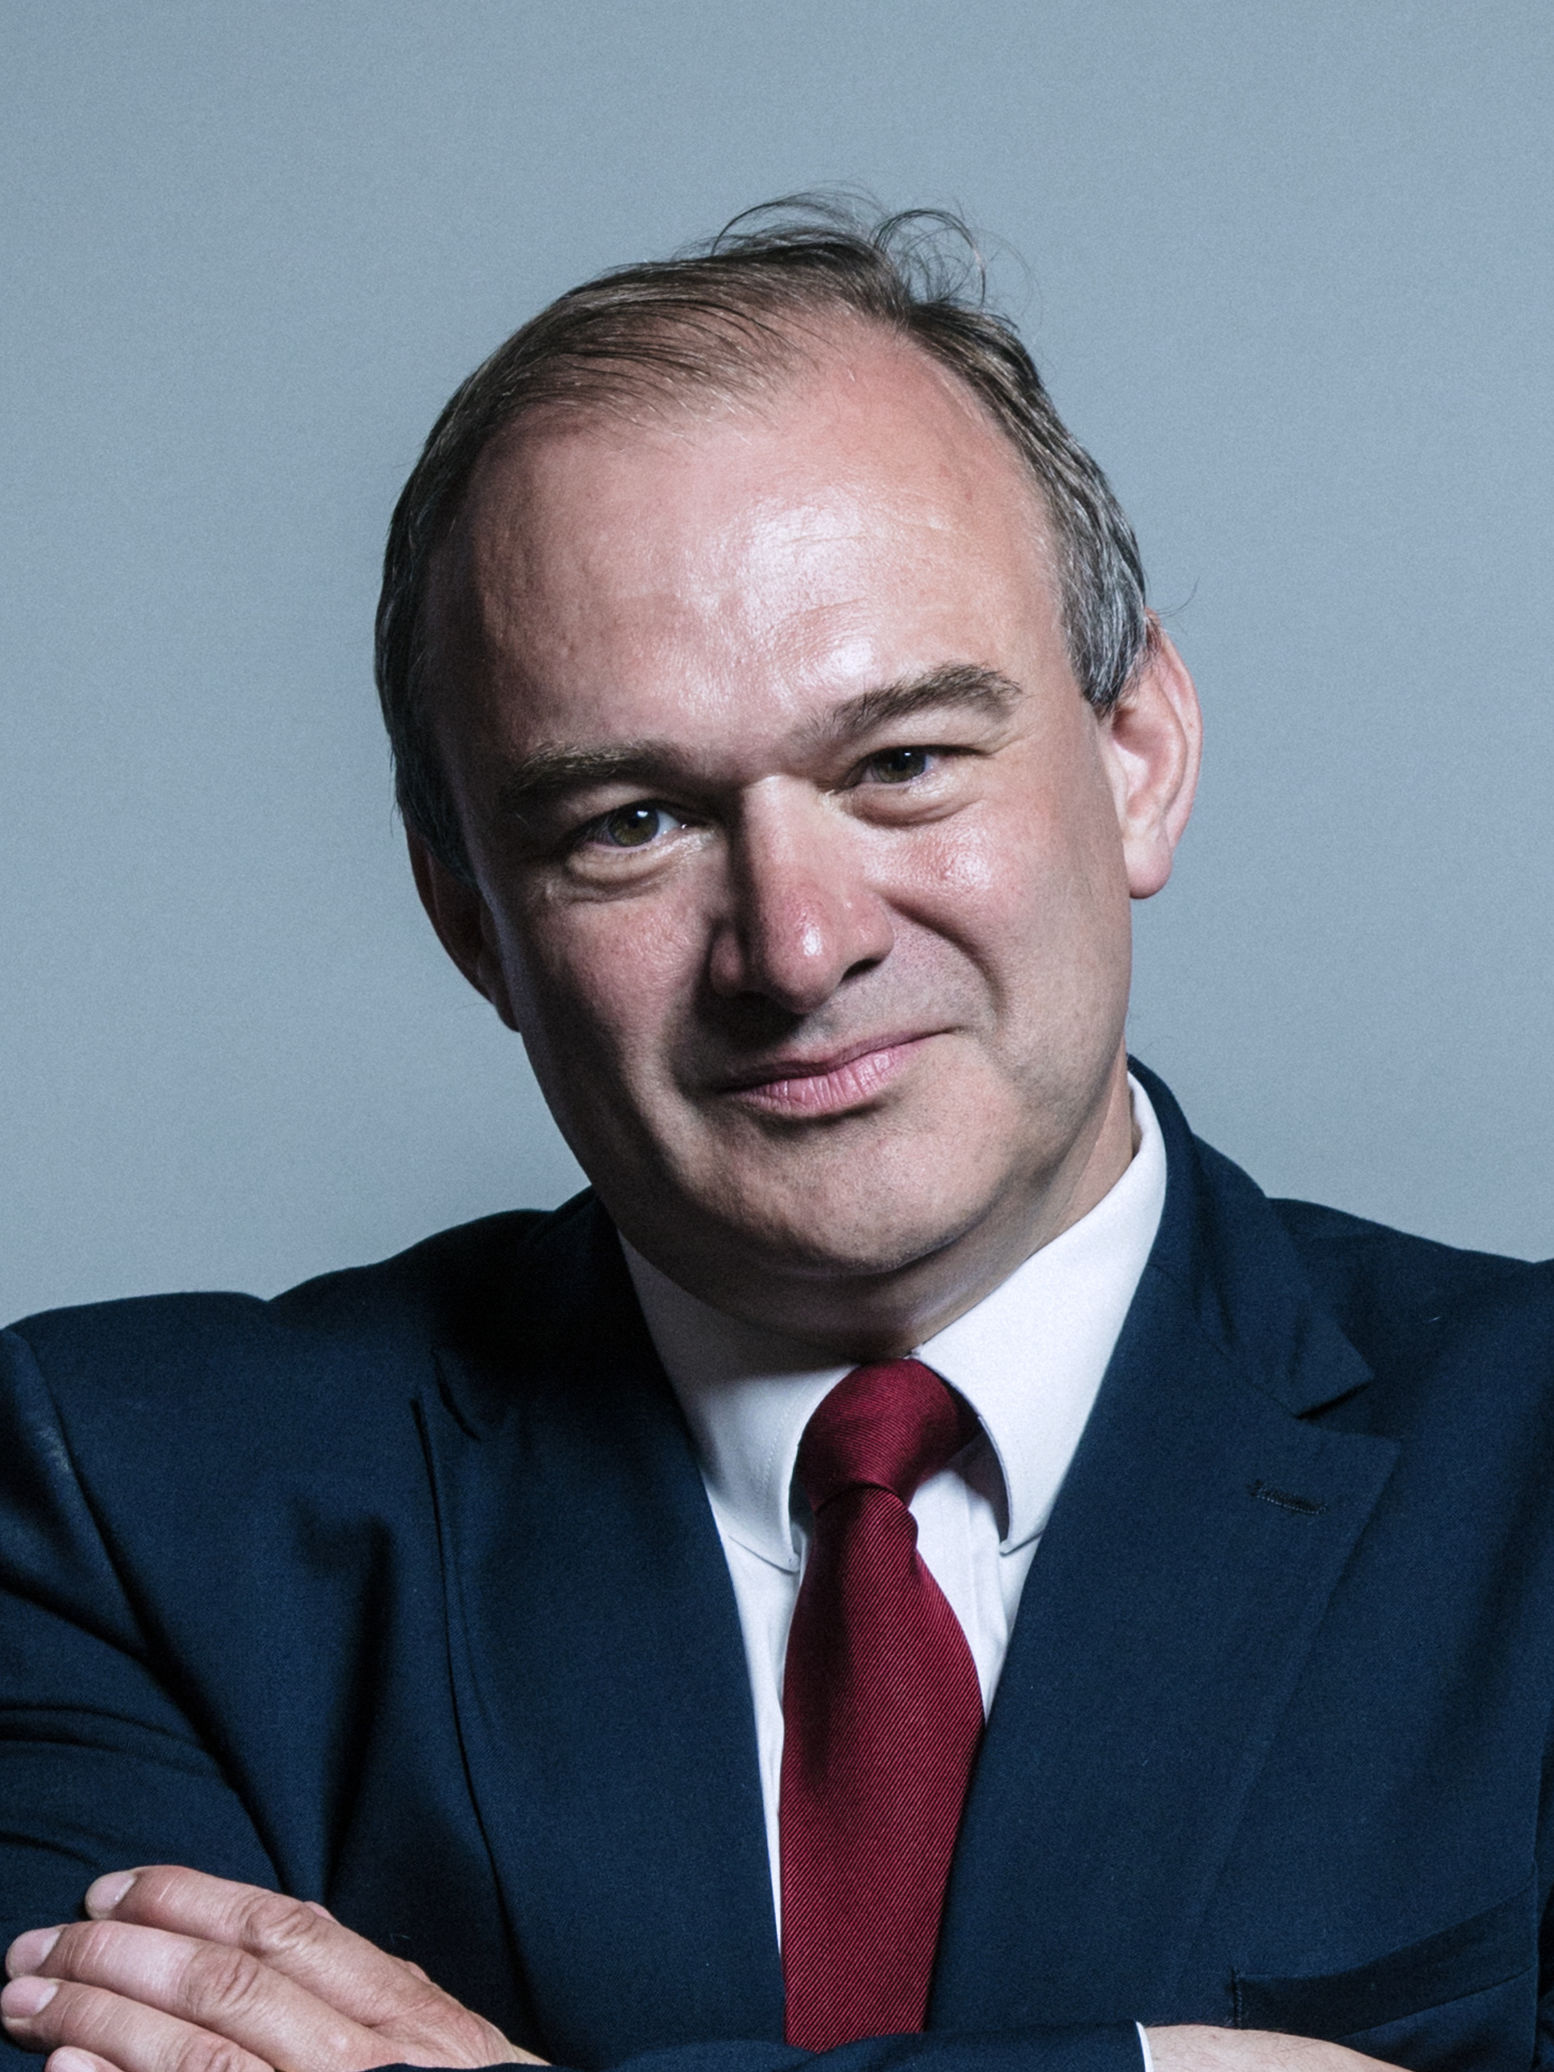 File:Official portrait of Sir Edward Davey crop 2.jpg - Wikipedia